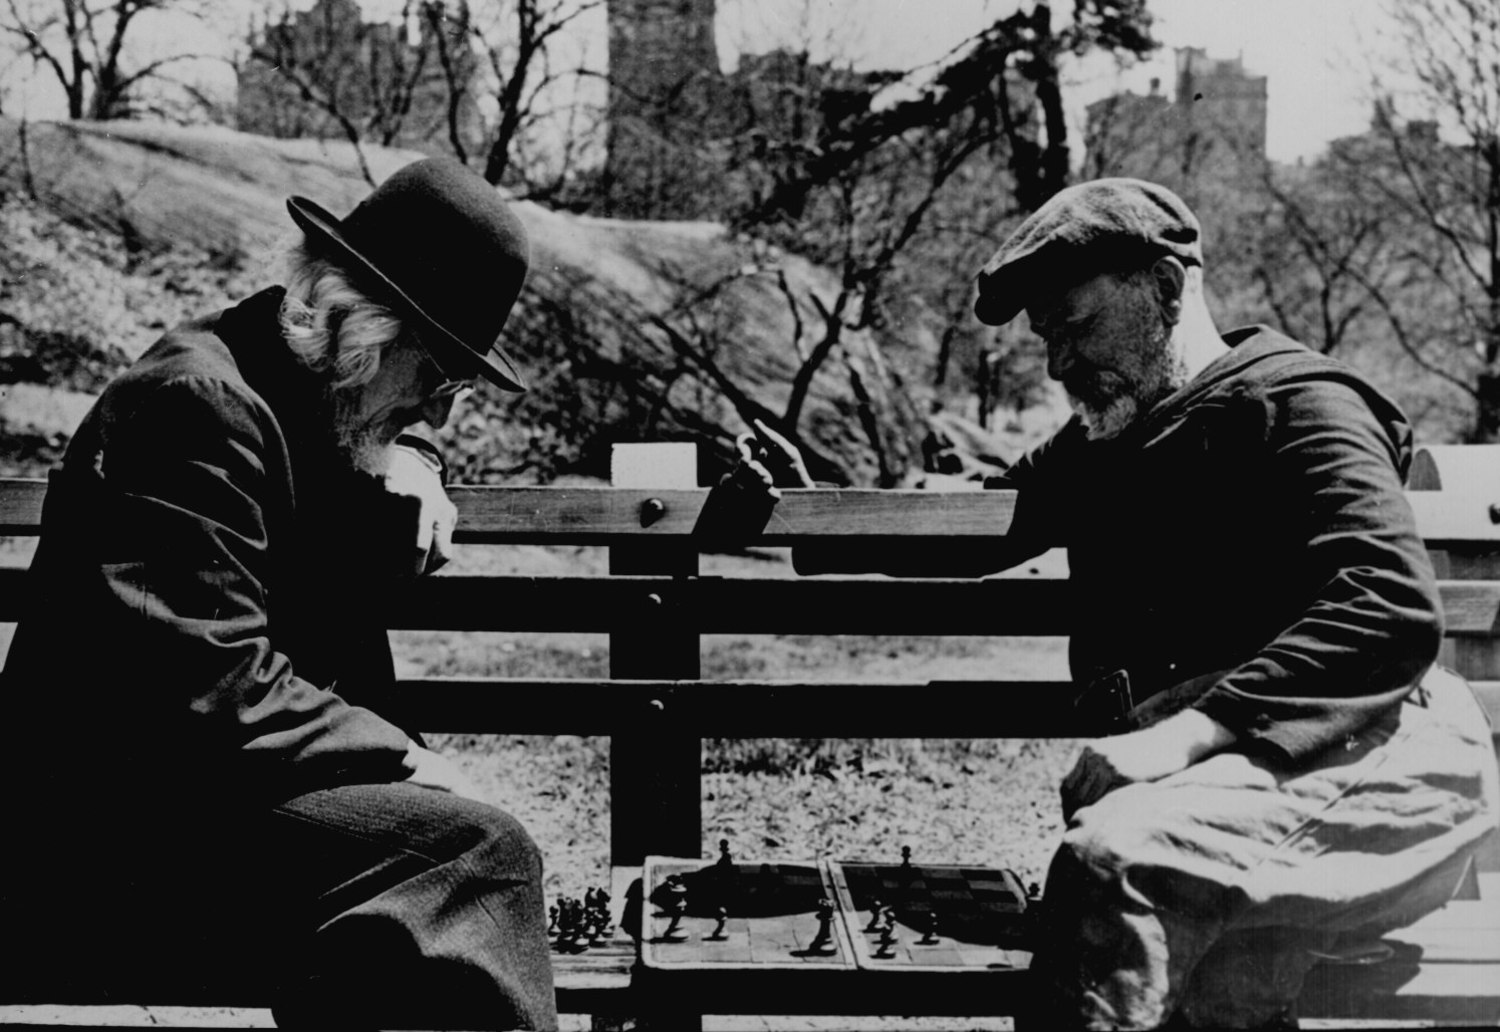 Two oldtimers playing chess on a Central Park bench in New York City, May 1946.